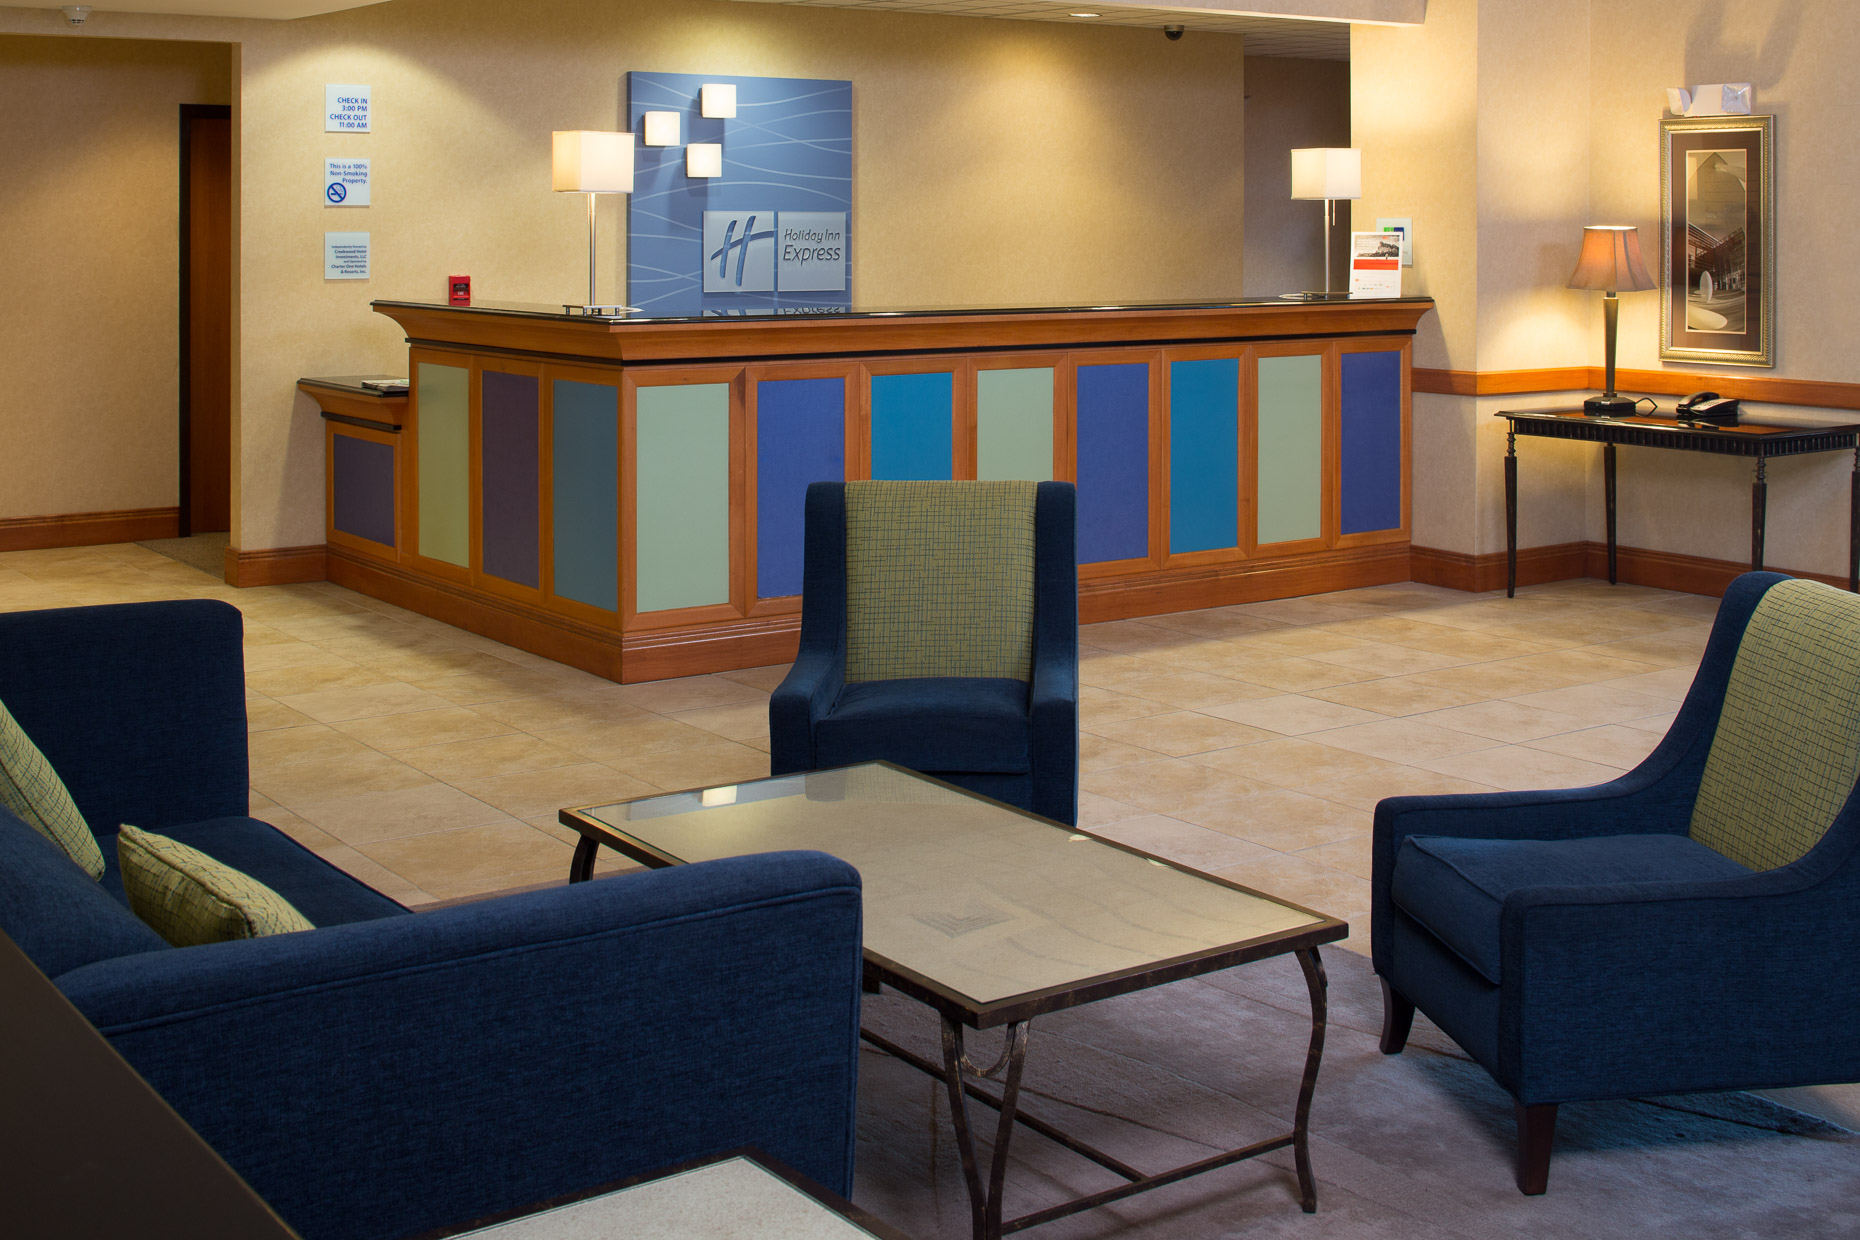 Holiday Inn Express Lobby - Mark Borosch Photography - Sarasota, FL